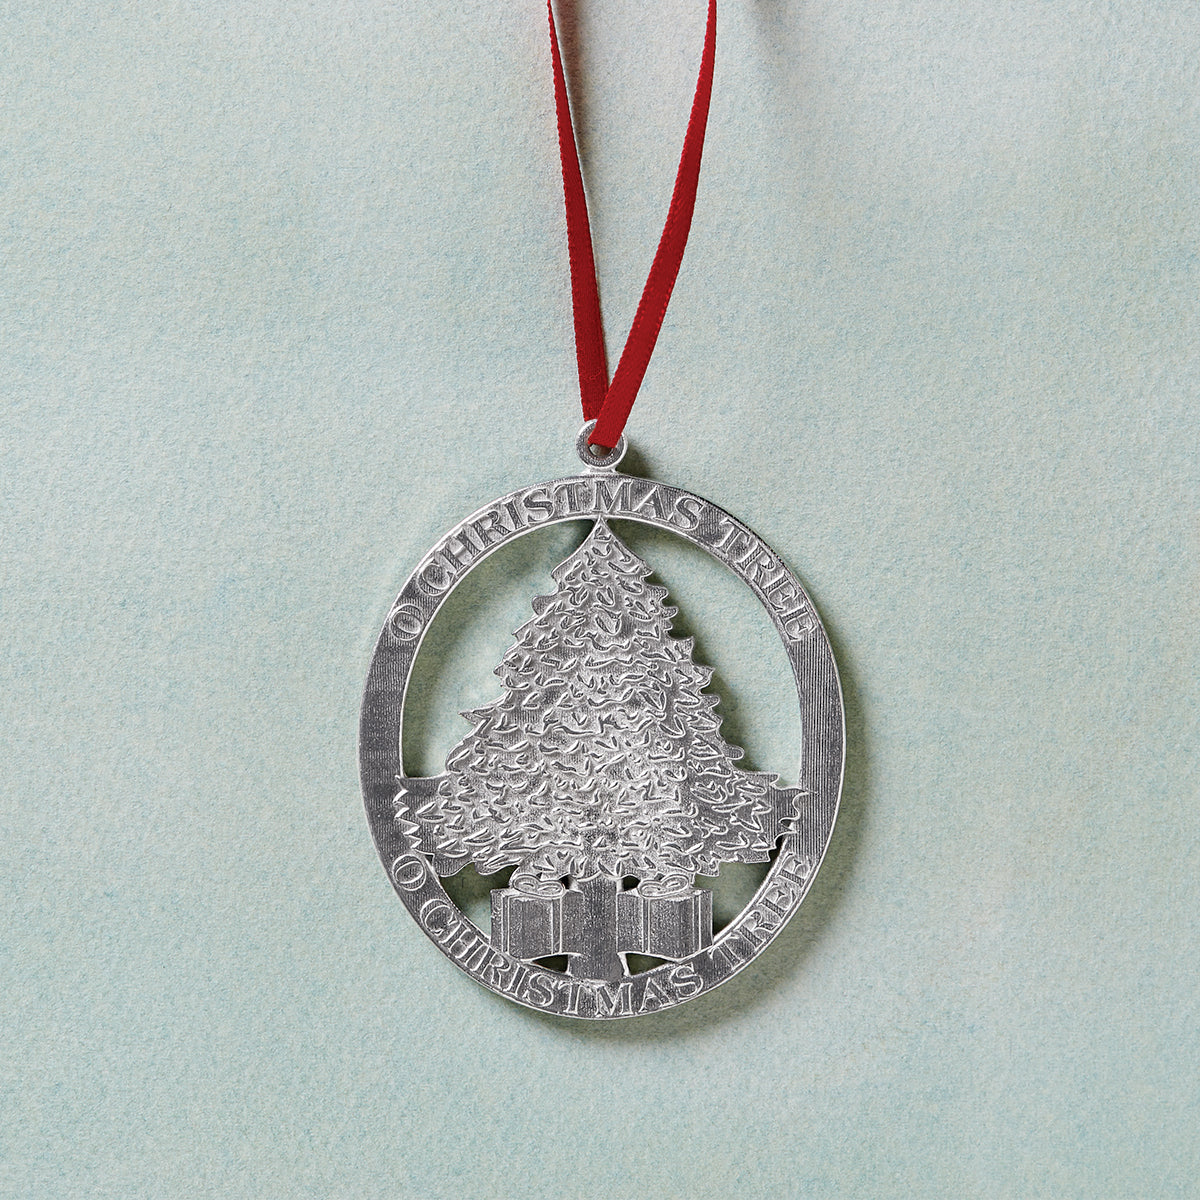 'O Christmas Tree' Pewter Ornament